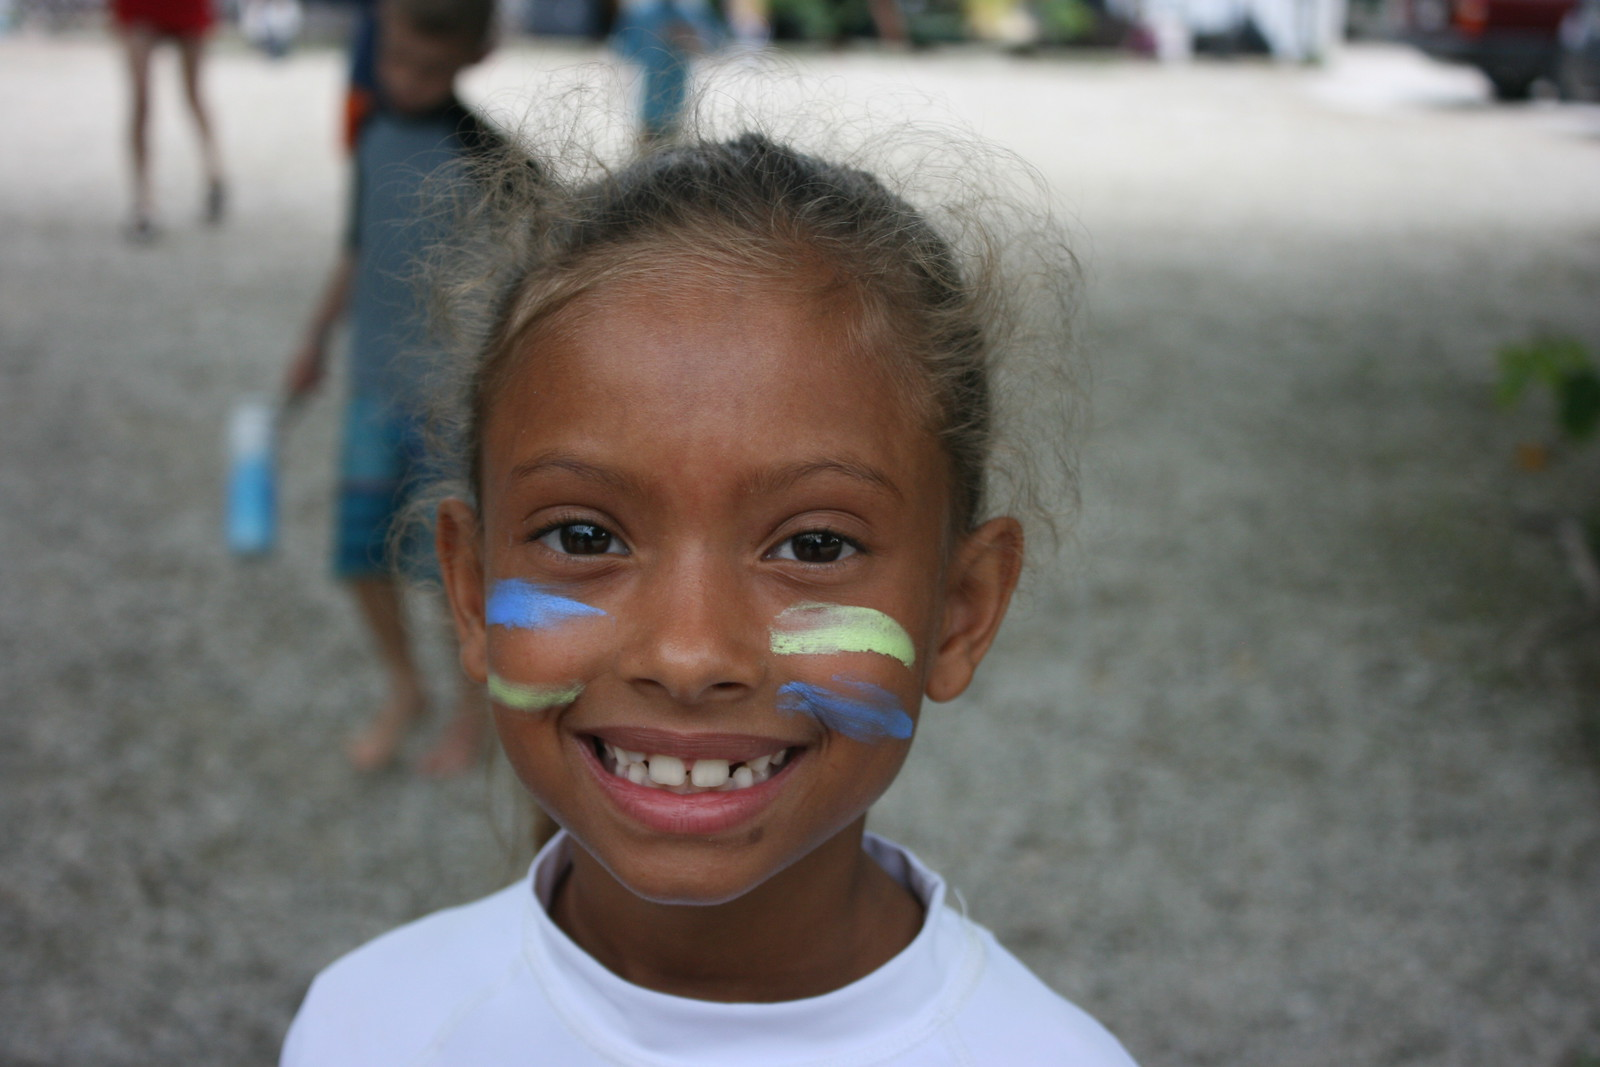 Campers showed their team spirit with face paint in their surfboard paddling team colors.